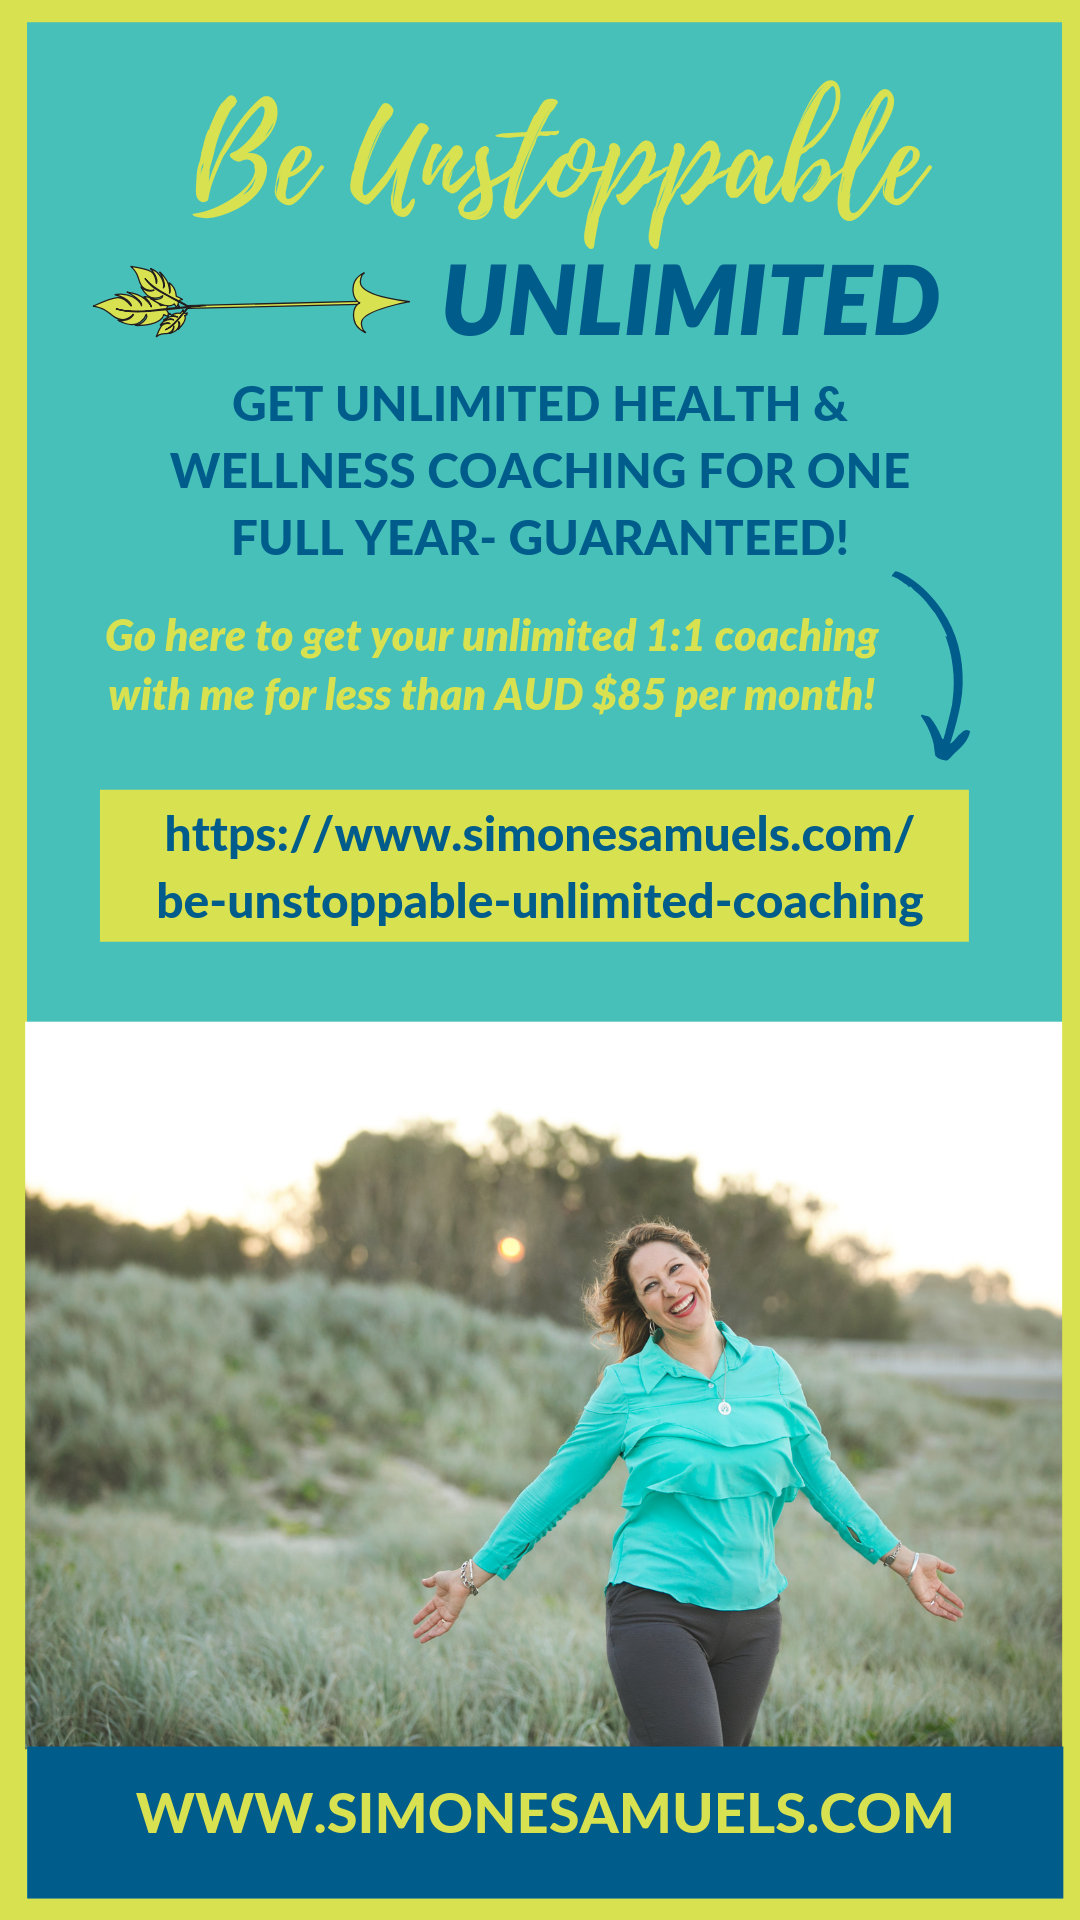 Be Unstoppable: Unlimited Health Coaching- Simone Samuels